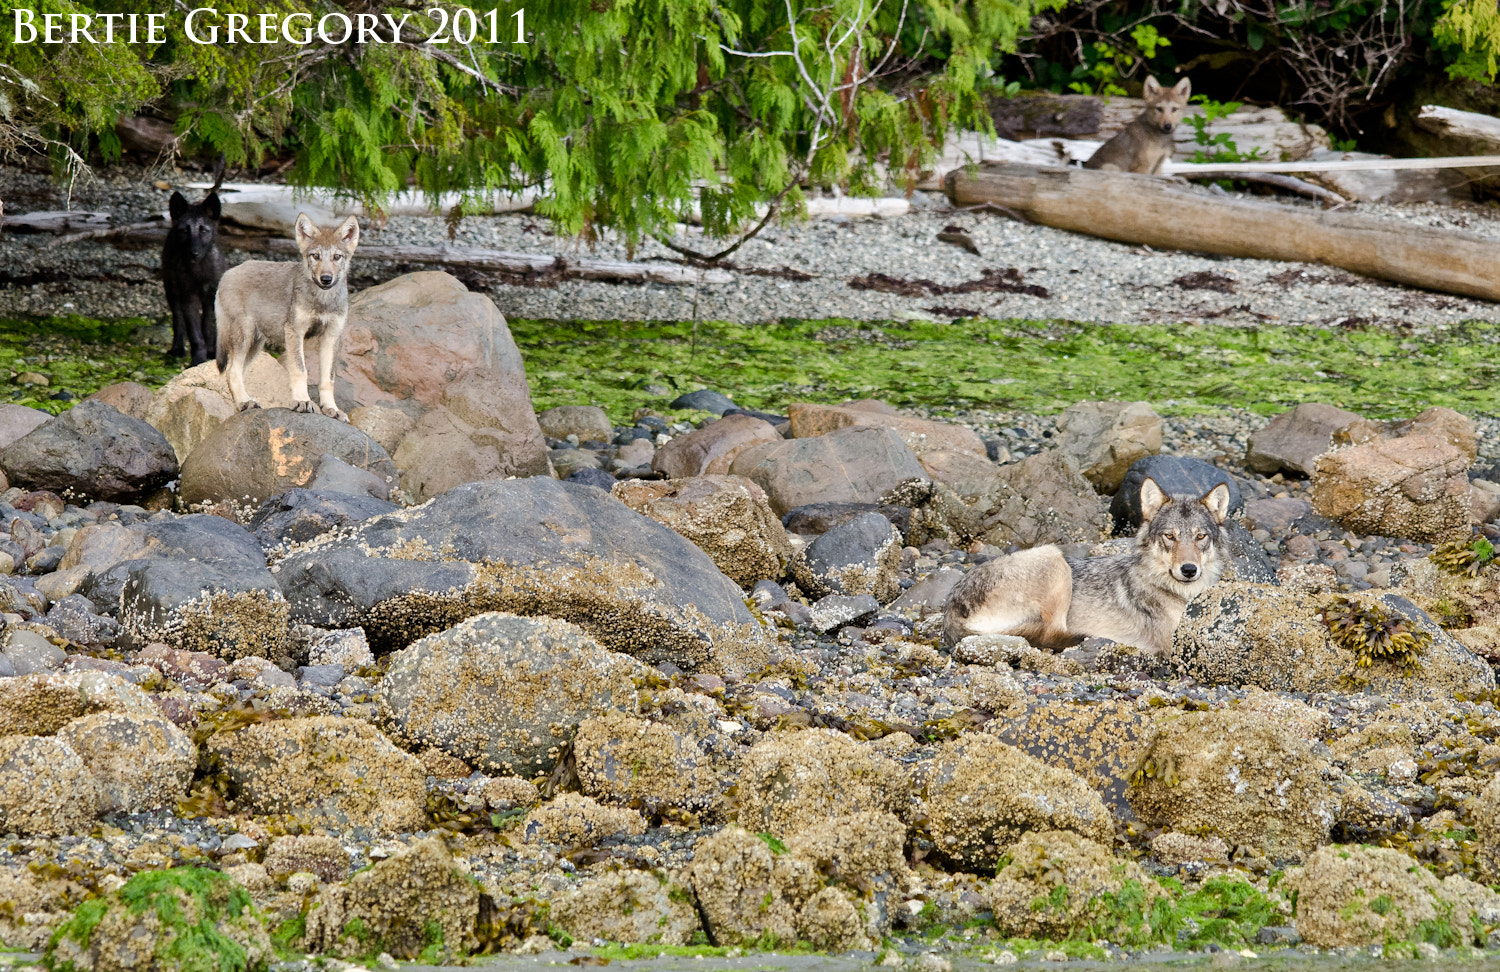 Photograph Coastal grey wolf family by Bertie Gregory on 500px